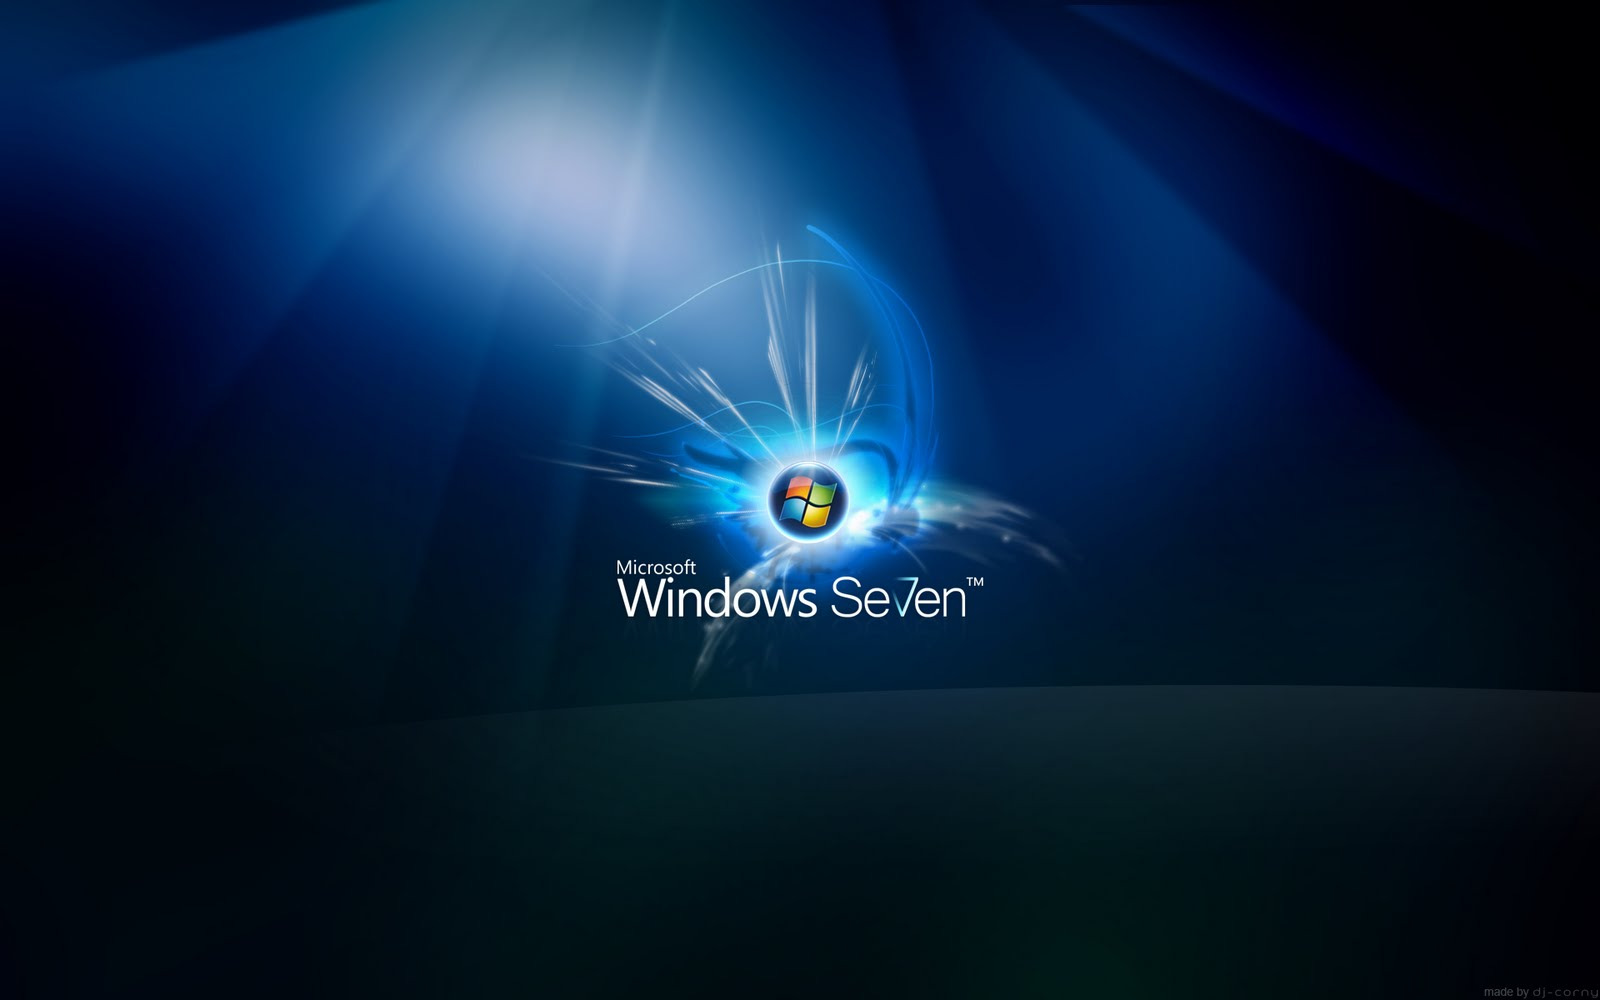 http://2.bp.blogspot.com/-Jp6s1F62Ri4/TYt8m6MxPaI/AAAAAAAAHZs/qRfvQeo91JU/s1600/Windows_Seven_Glow_1920_1200-Windows_7_Energize_by_Windows-jagodunya-hd-wallpapers-high-quality-wallpapers-windows-wallpapers-2011-latest-widescreen-latop-mac-wallpapers-desktop-wallpapers-dell-hp-sony-wal.jpg